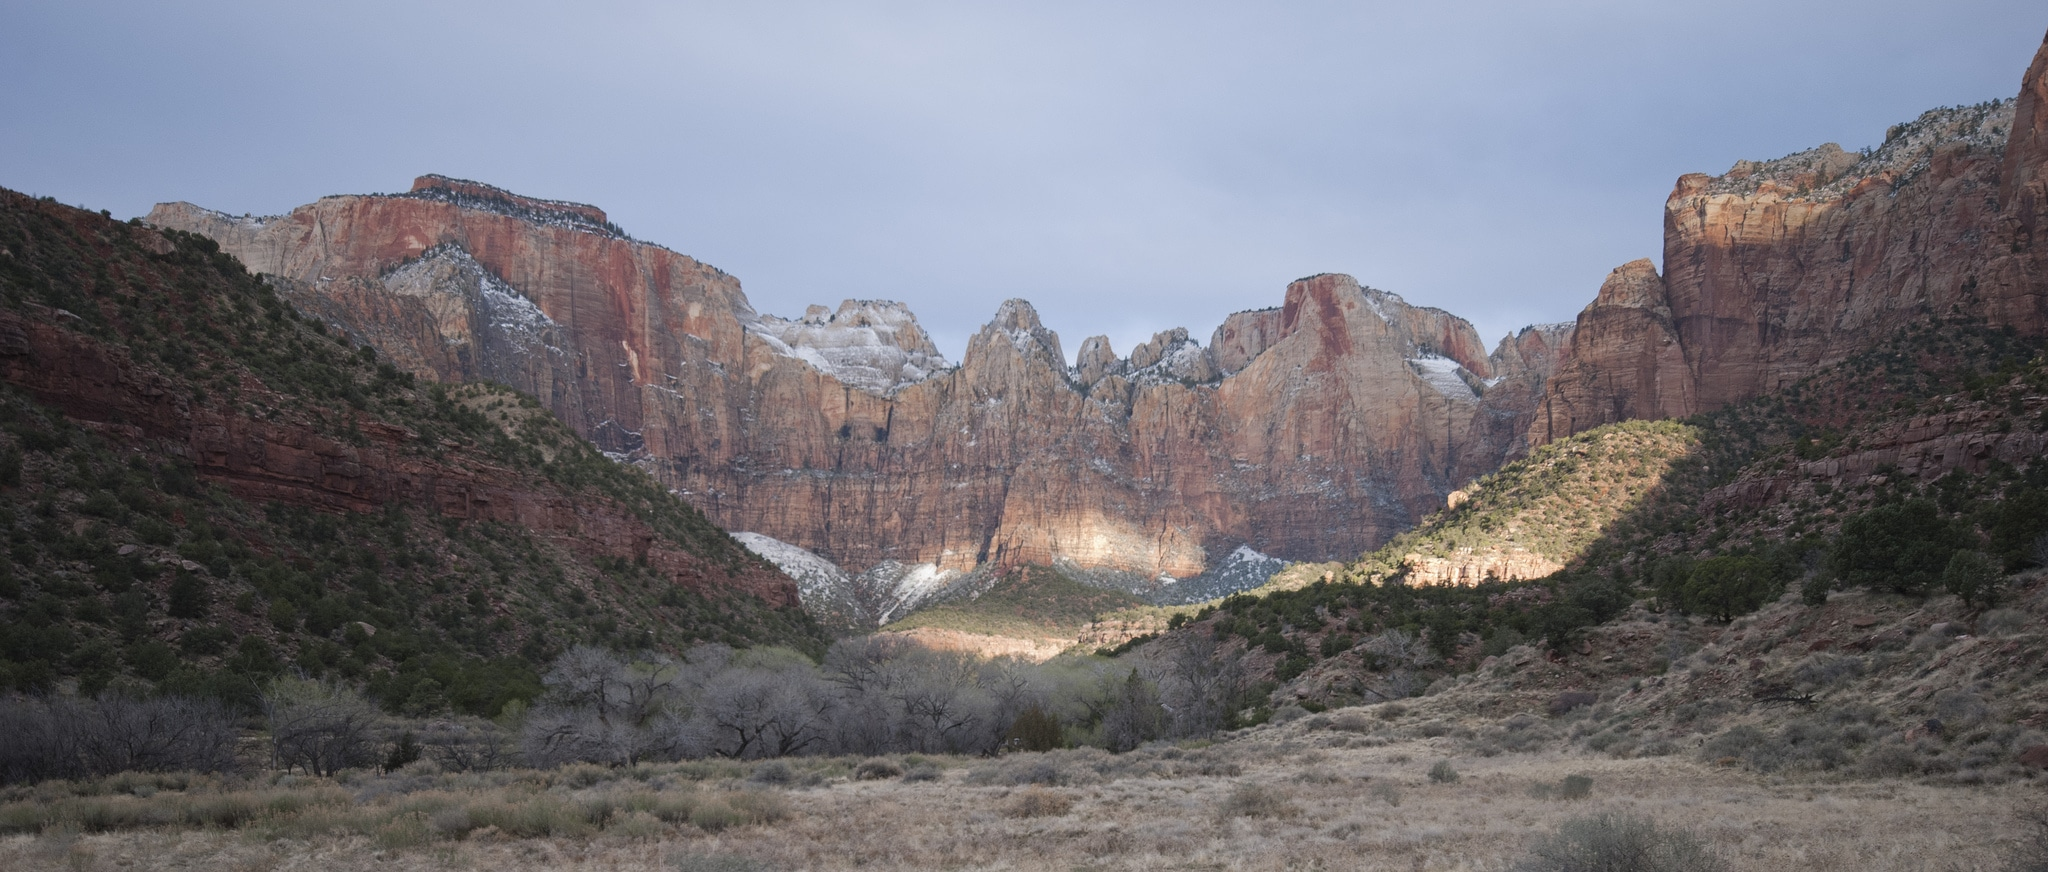 zion national park view of the canyon during sunset